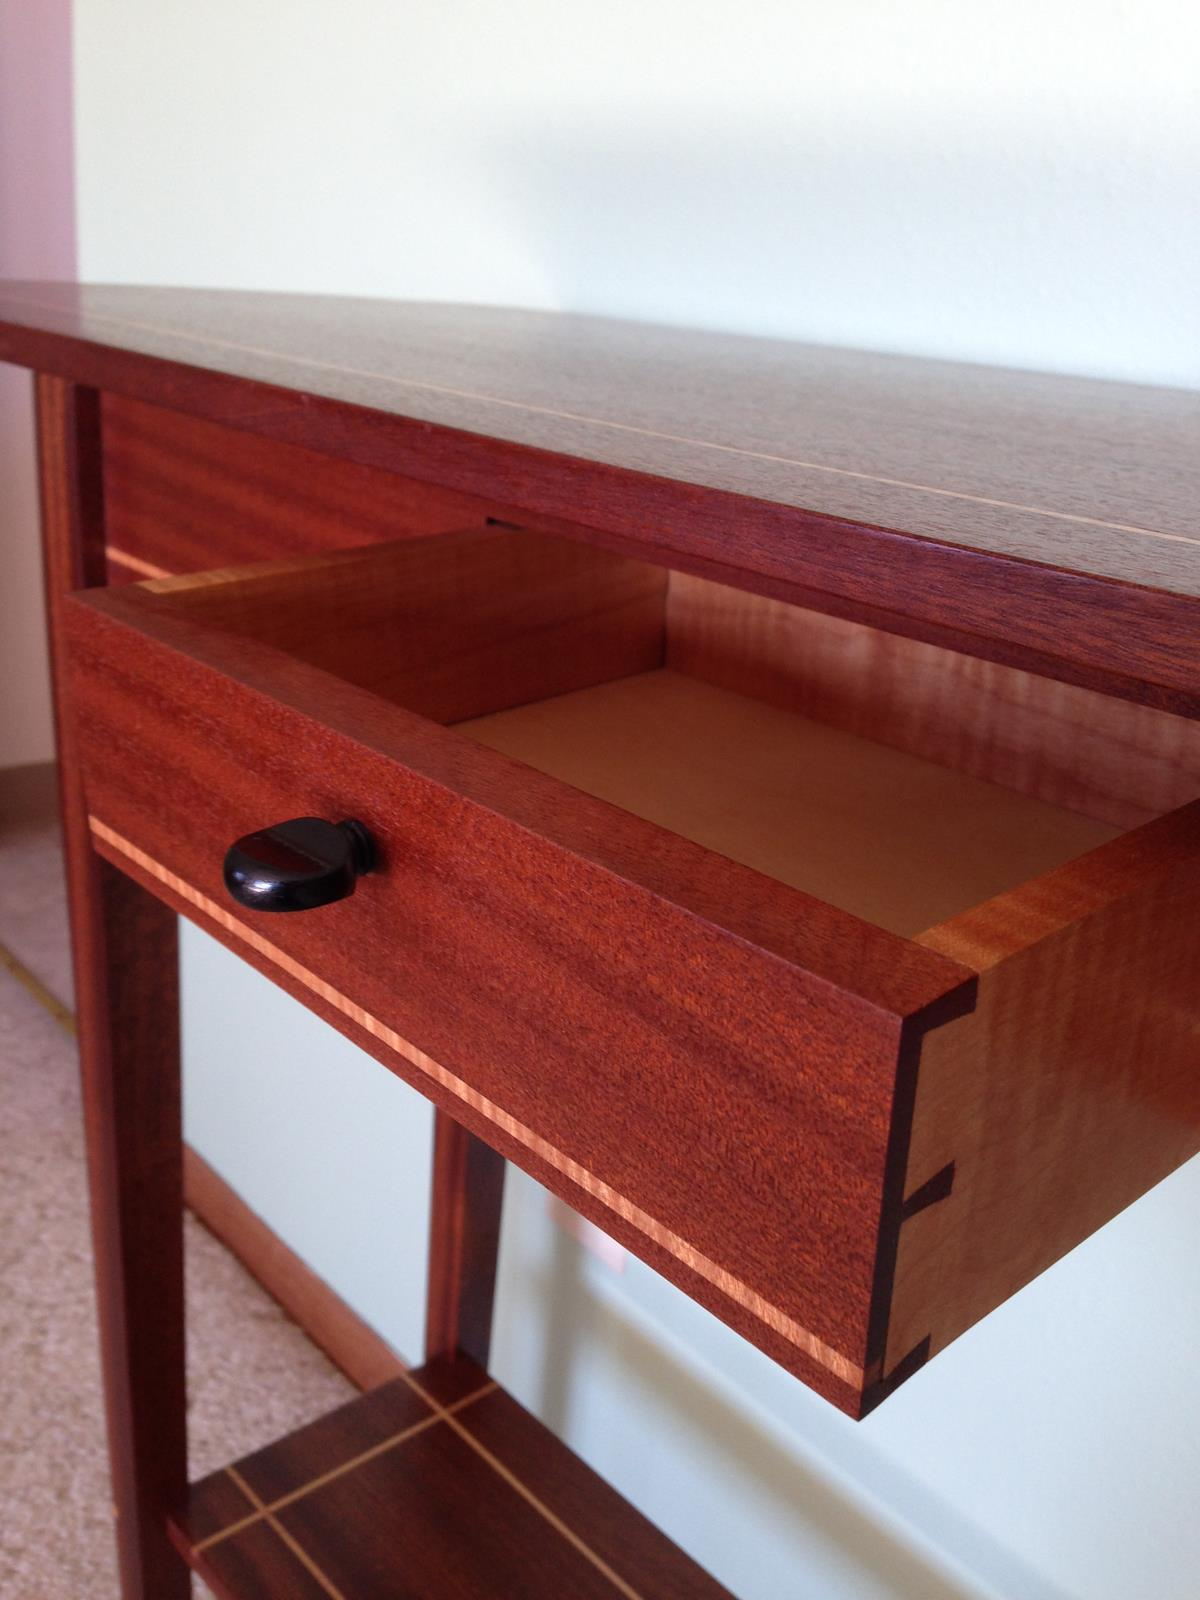 Sideboard Table - Sapele with Maple Inlay and Ebony Drawer Pull